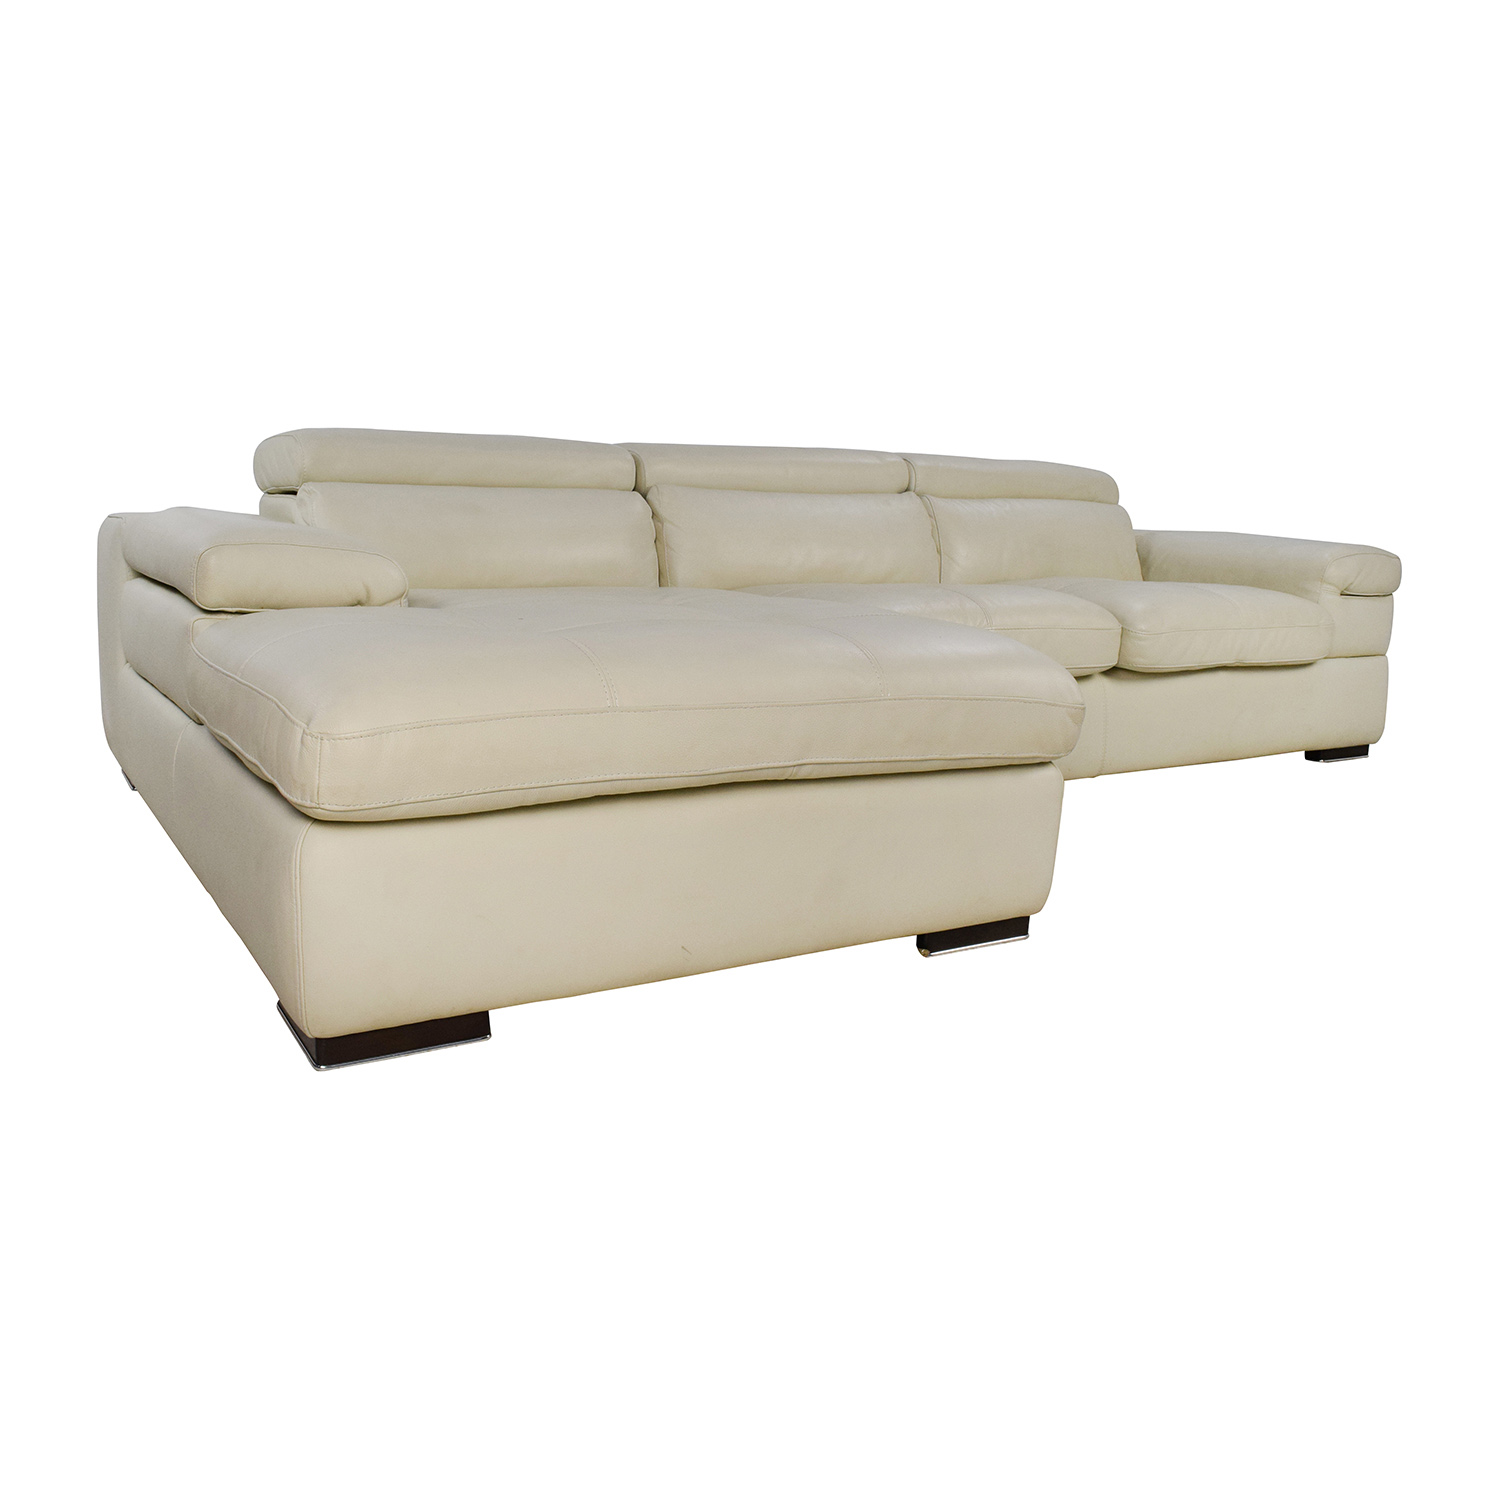 69 off l shaped cream leather sectional sofa sofas for Leather sectional sofa